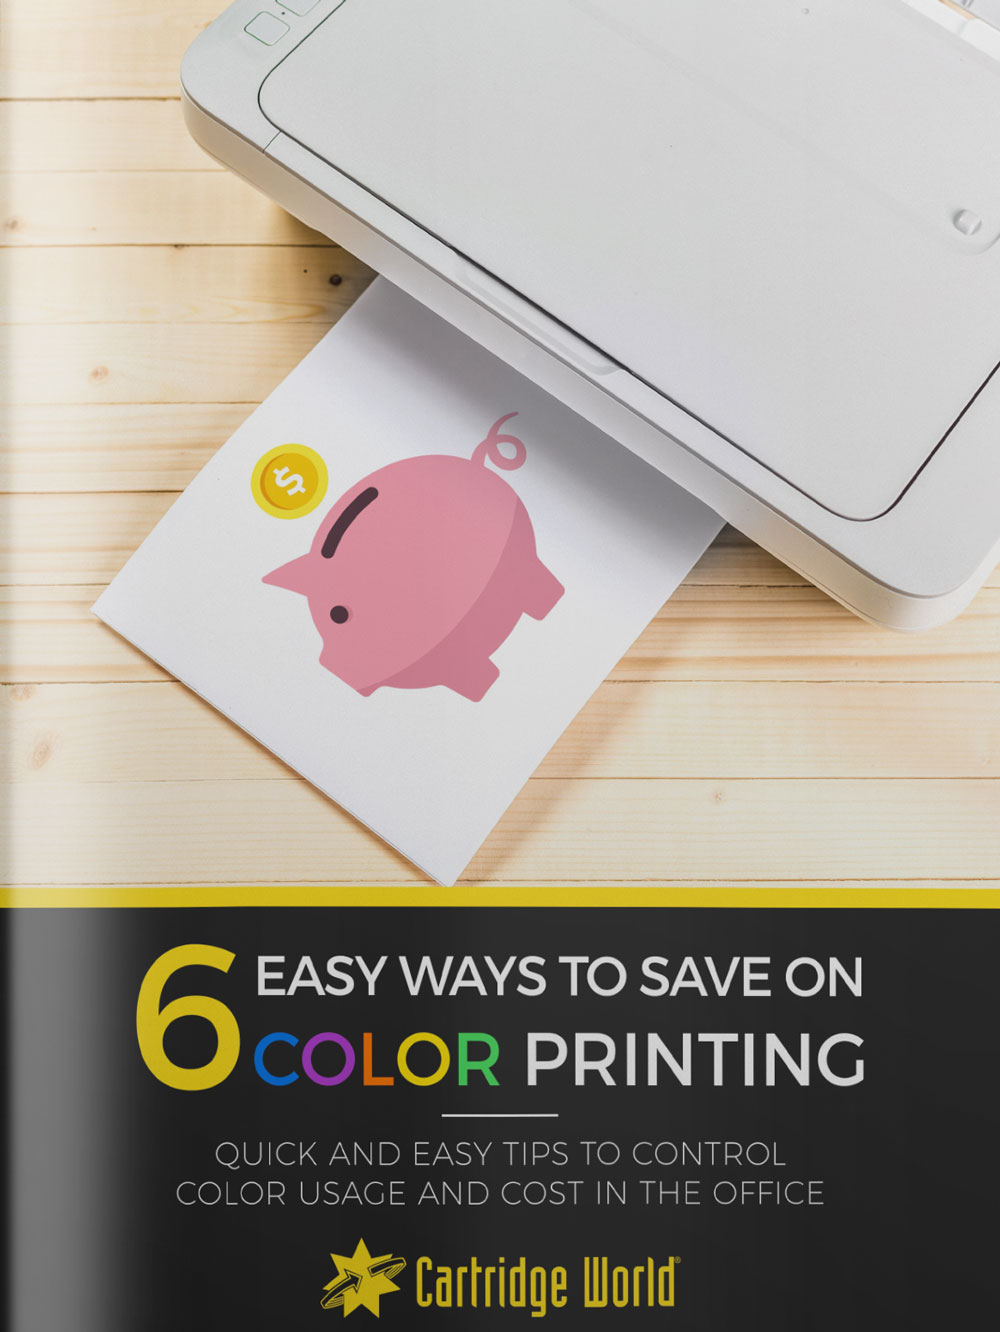 Save on Color Printing